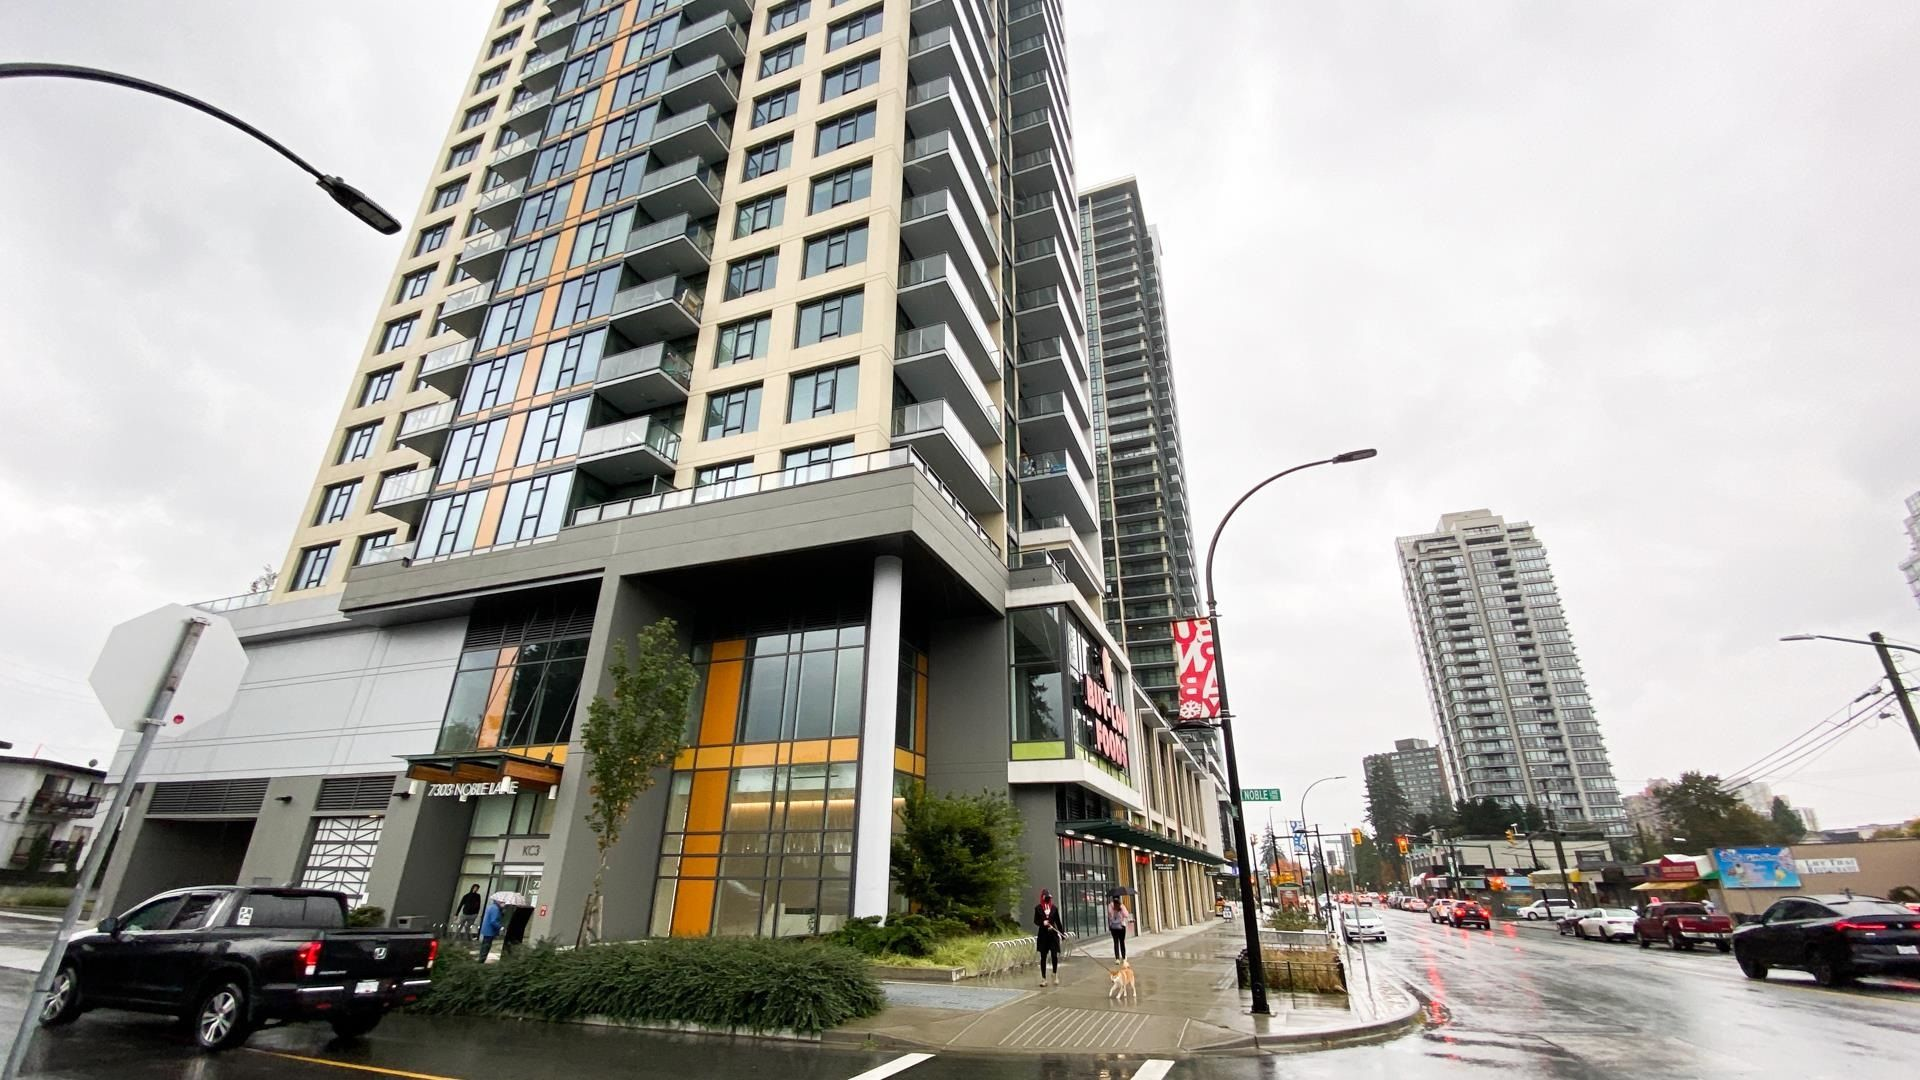 Main Photo: 2808 7303 NOBLE Lane in Burnaby: Edmonds BE Condo for sale (Burnaby East)  : MLS®# R2624764